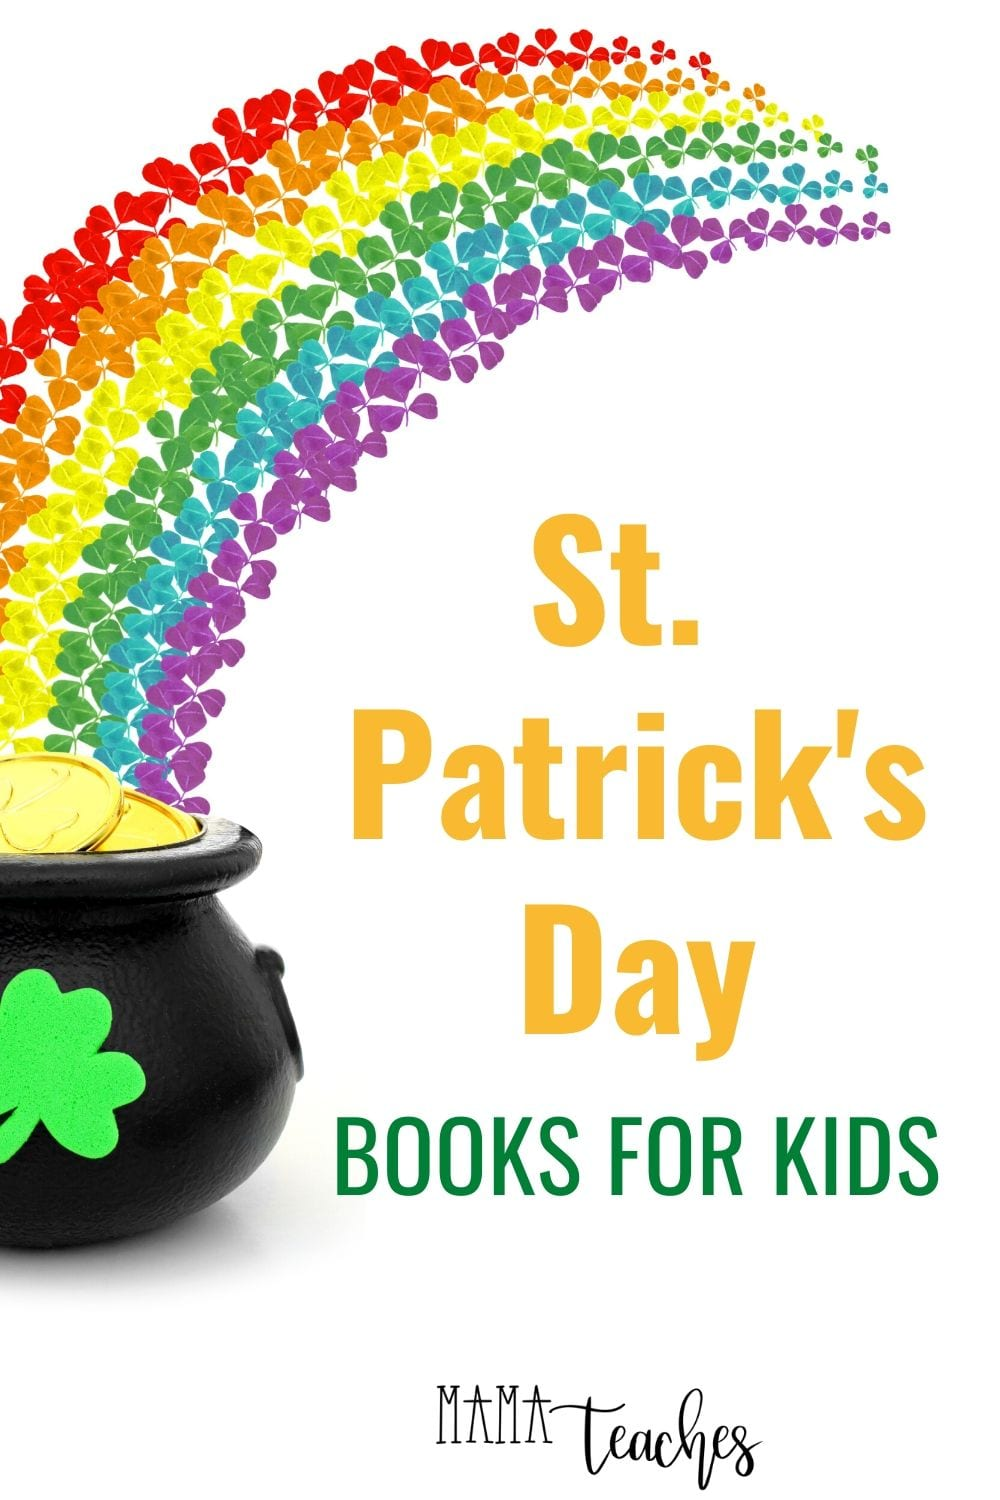 St. Patrick's Day Books for Kids - fun children's picture books for St Patricks Day